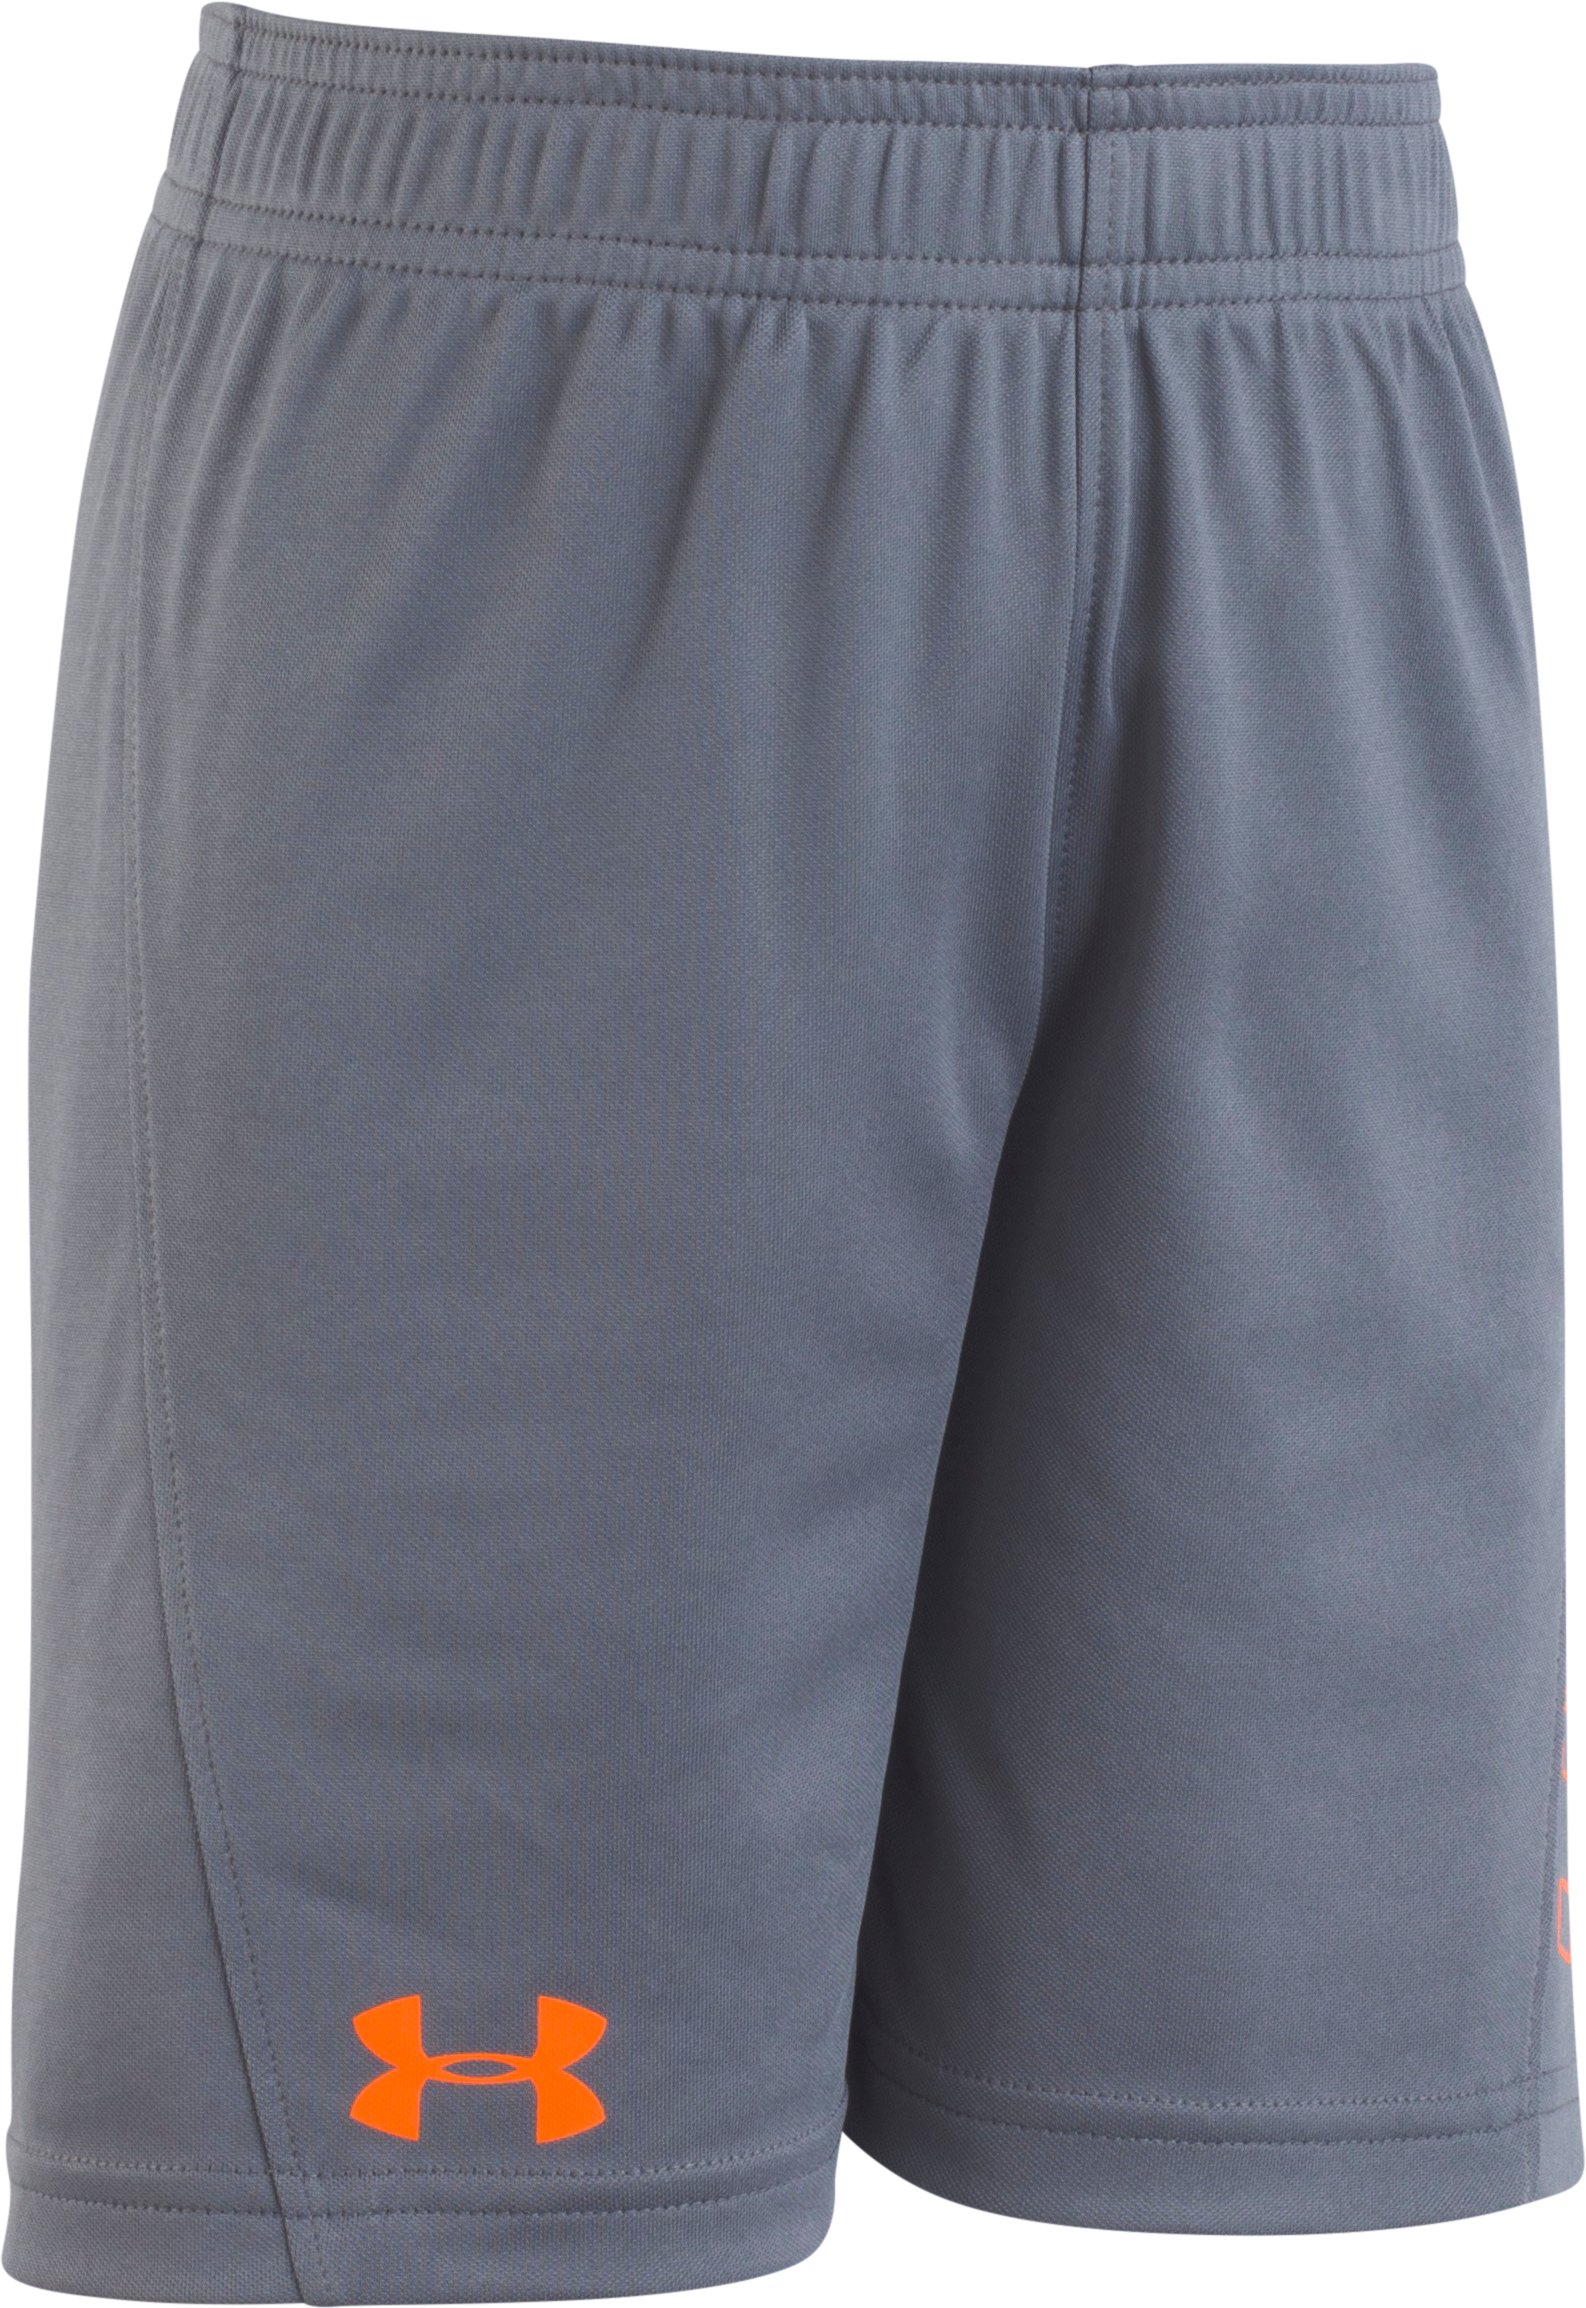 Boys' Pre-School UA Kick Off Short , Graphite, Laydown